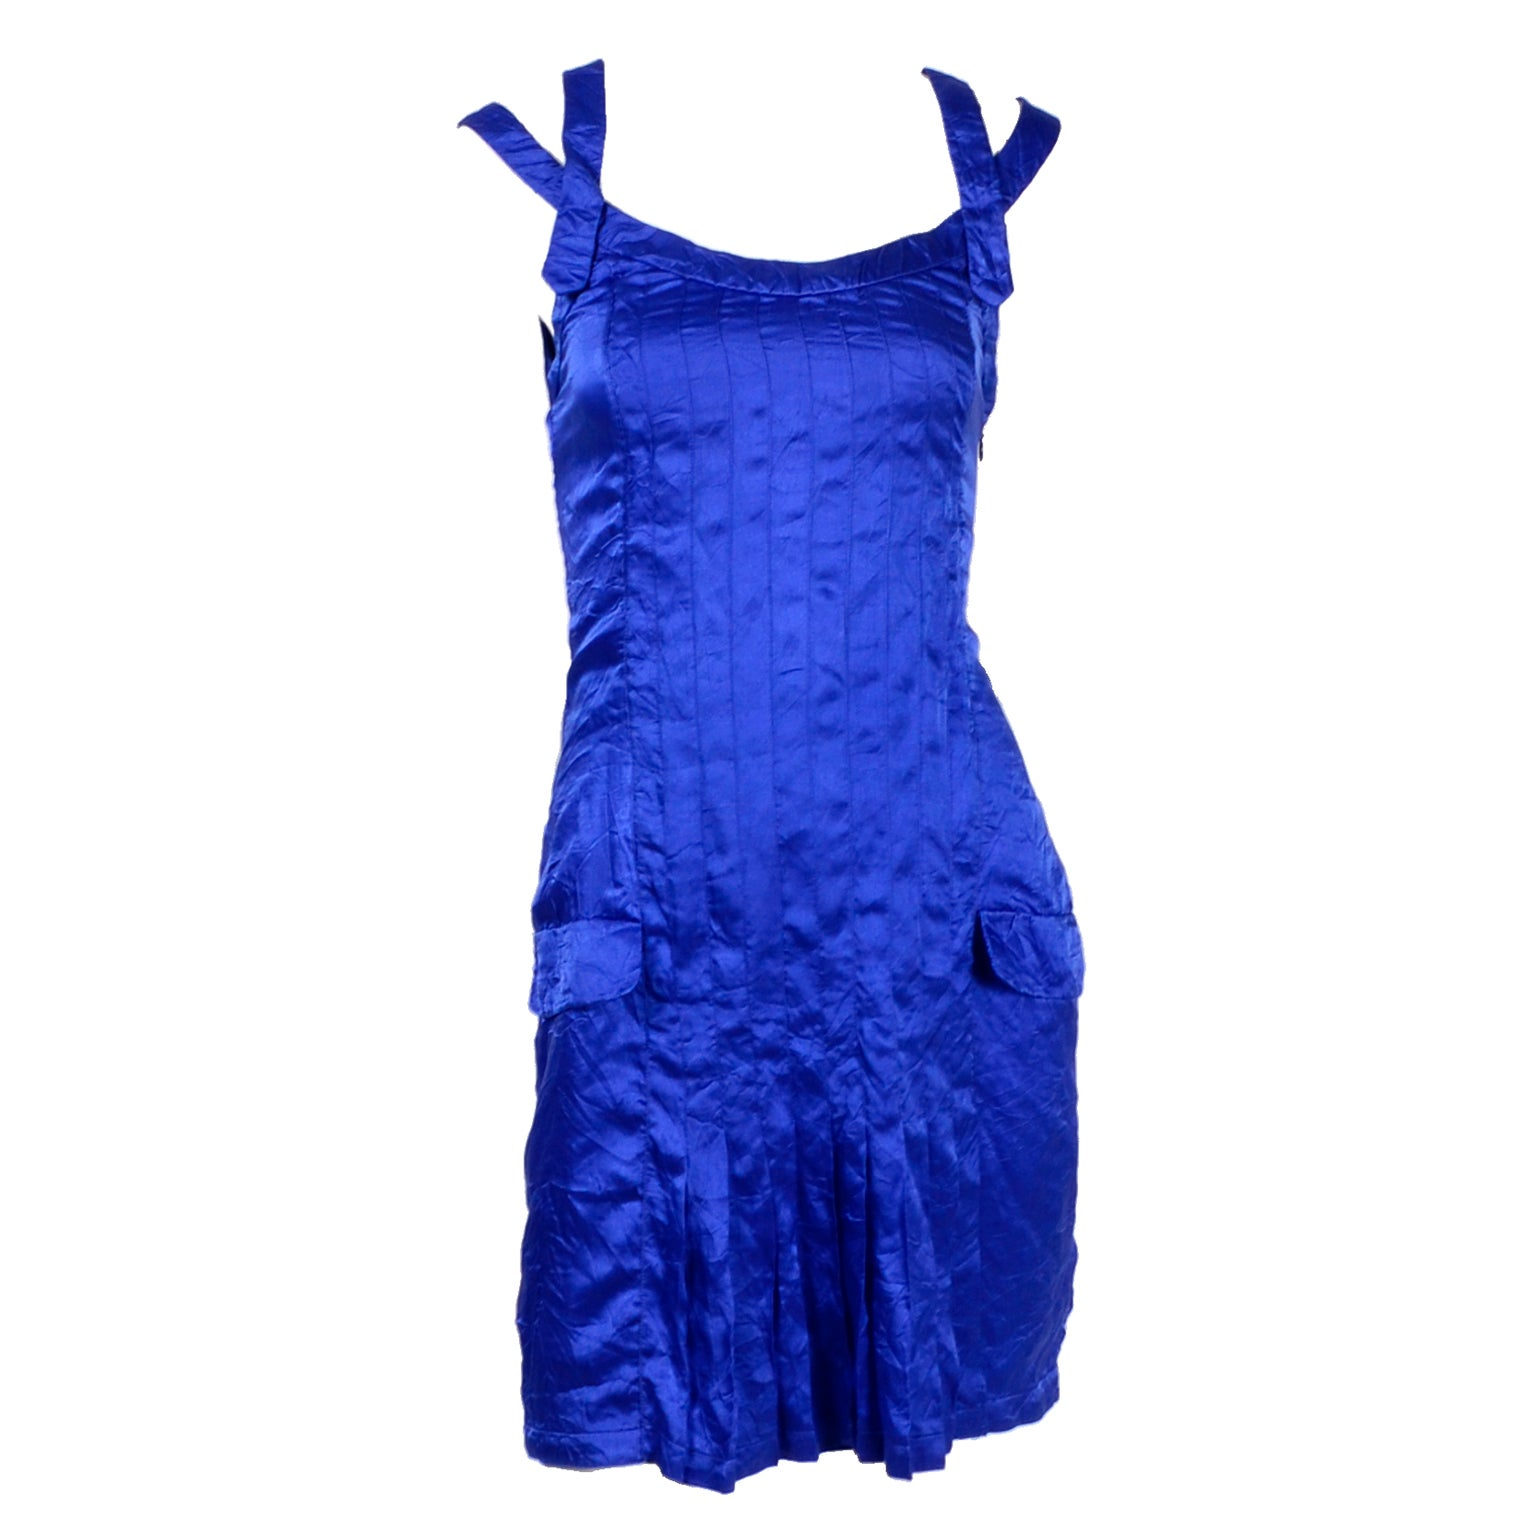 Gianni Versace Couture Blue Silk Documented Runway Dress, 1994